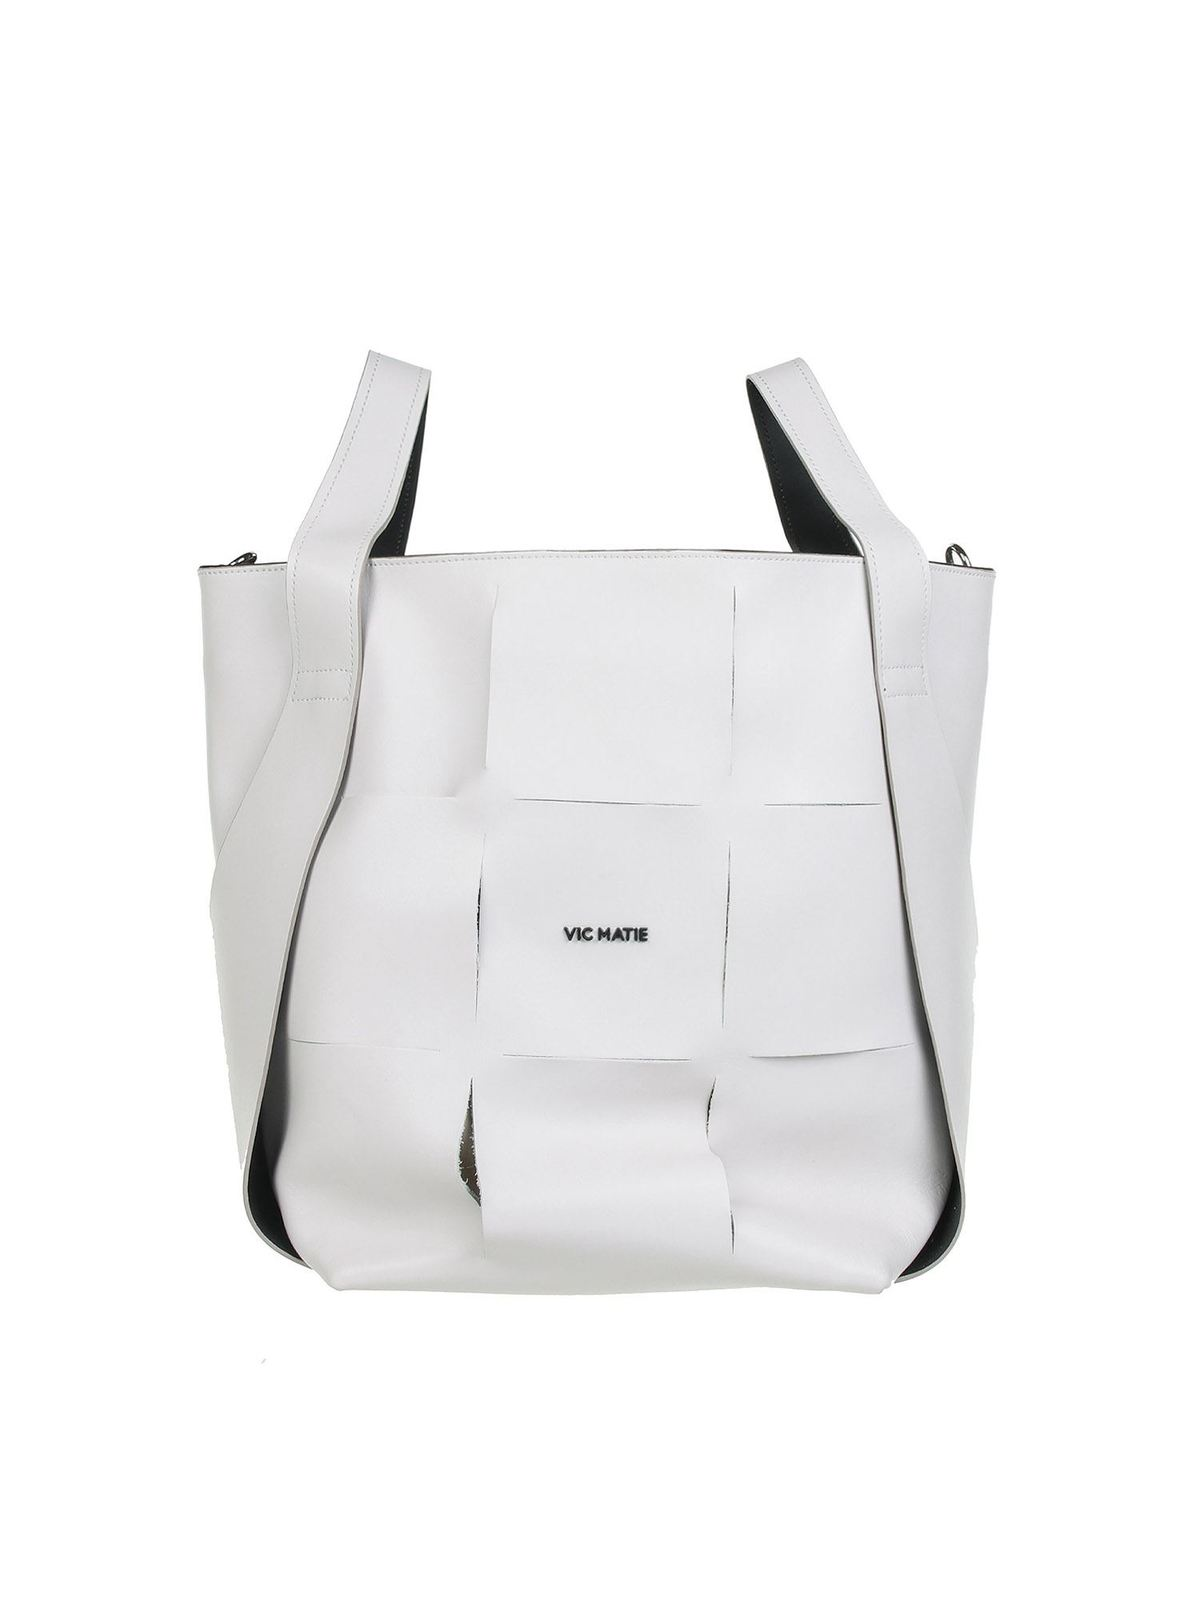 Vic Matie Leathers NADEGE BUCKET BAG IN WHITE